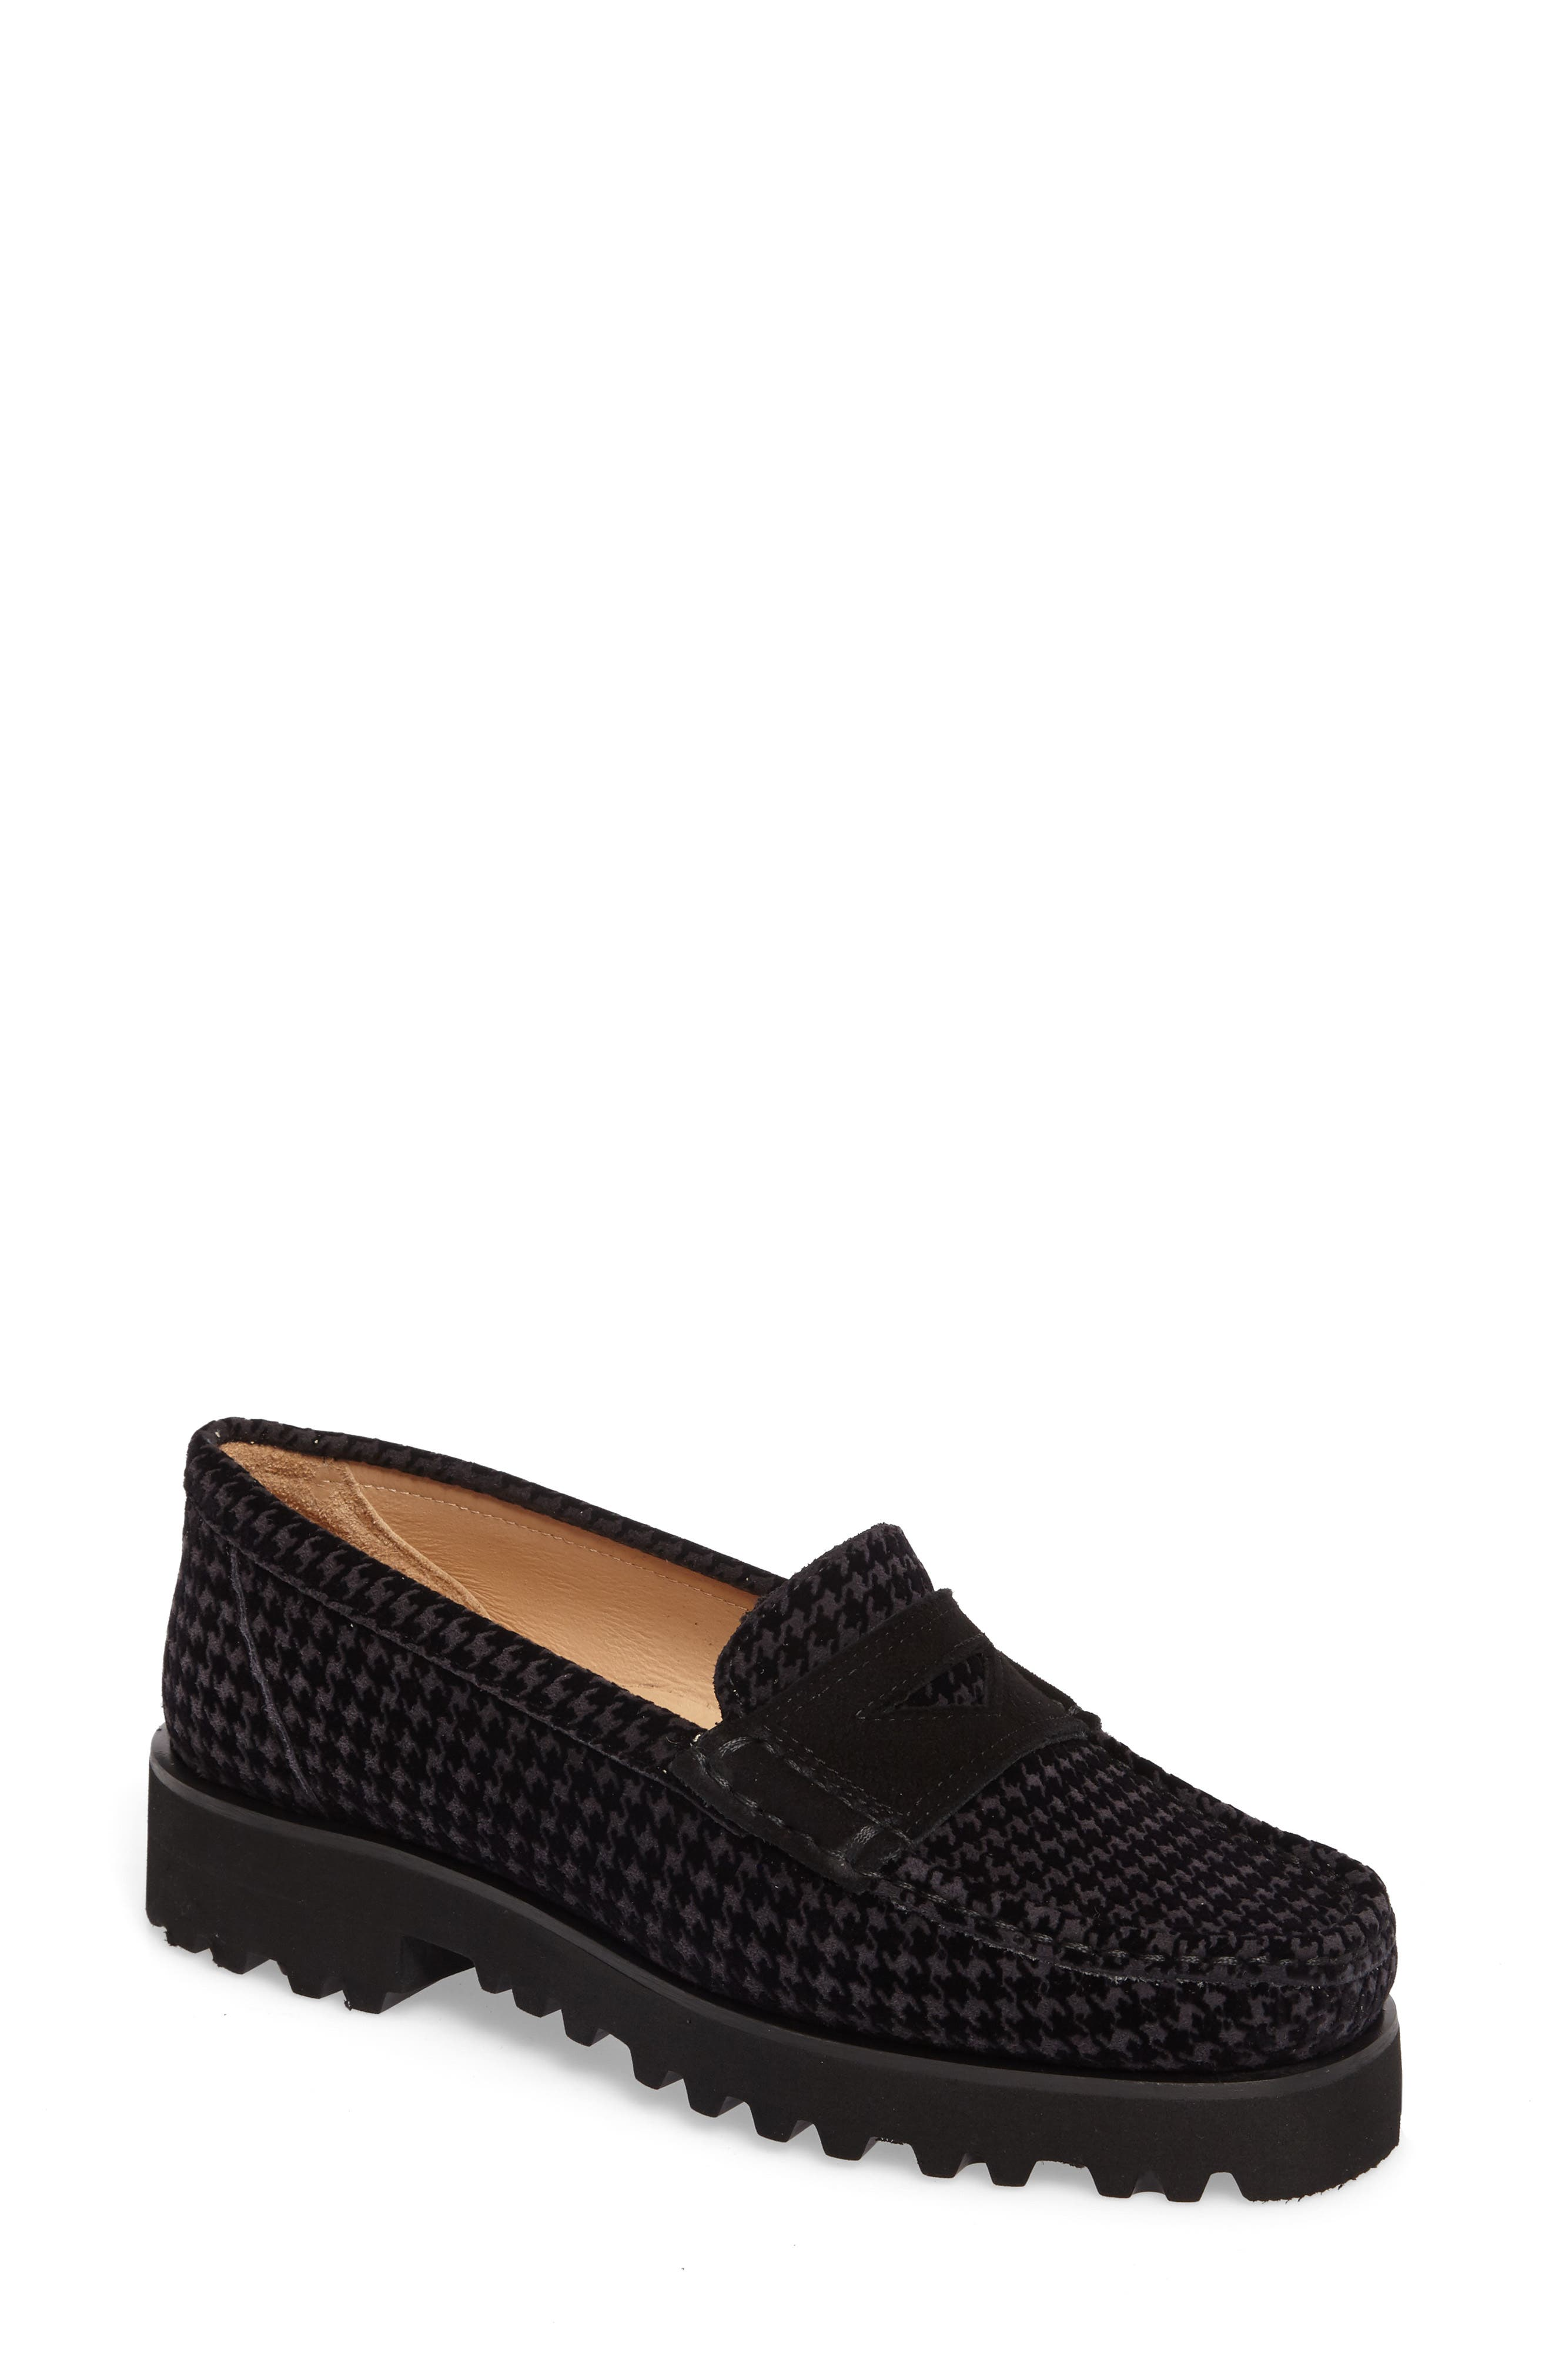 Rita Houndstooth Water Resistant Penny Loafer,                         Main,                         color, Slate Printed Suede